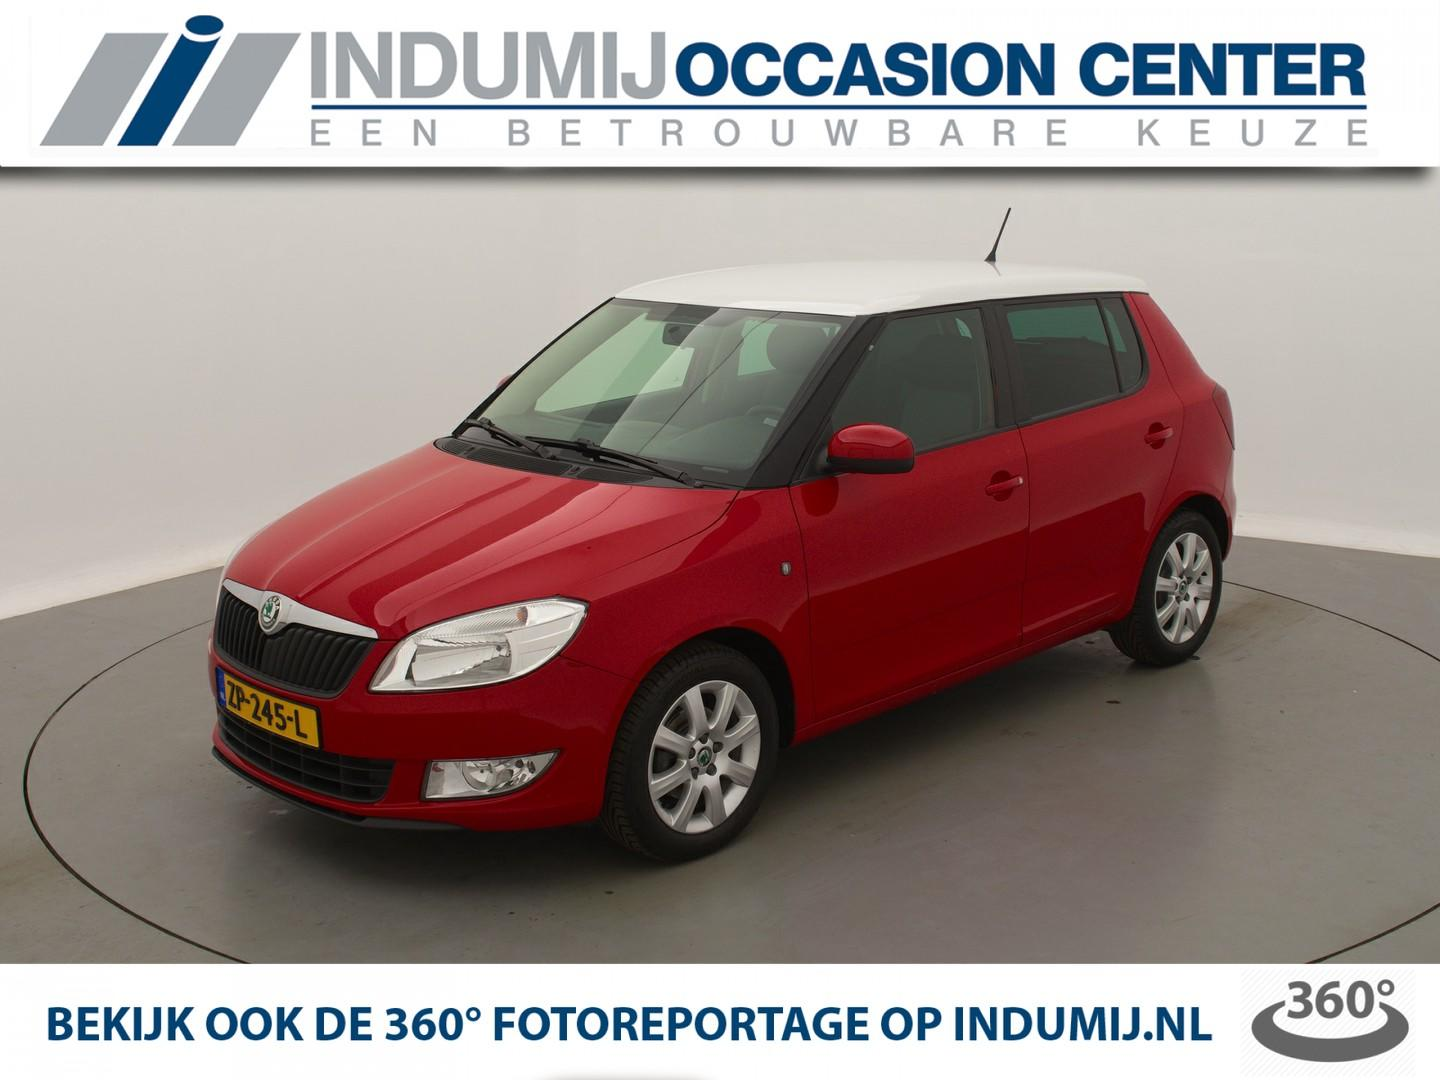 Škoda Fabia 1.2 tsi ambition businessline 5drs. // radio cd-mp3 speler / two-tone / lichtmetalen velgen